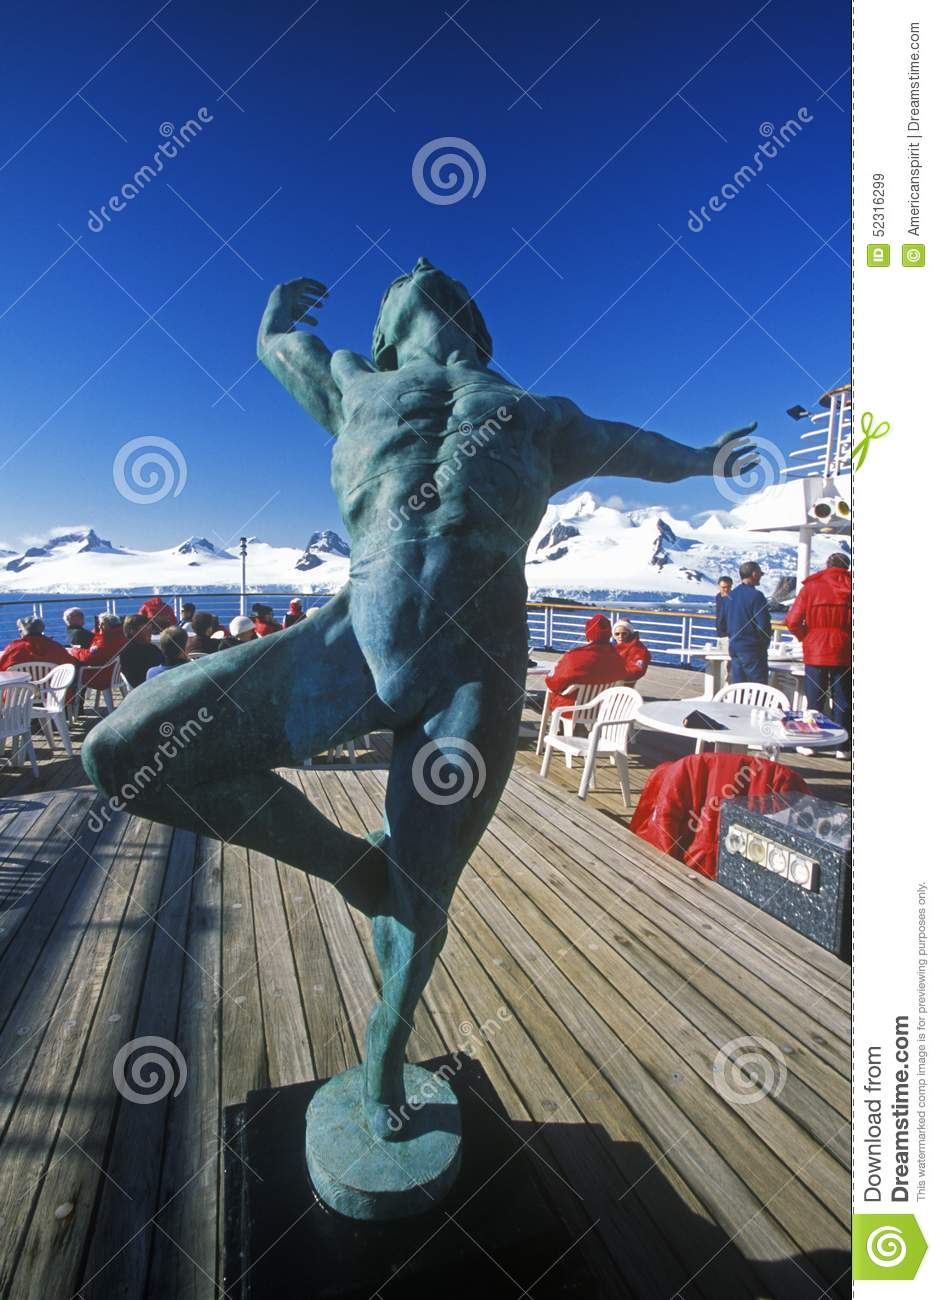 Decorative statue of man on the deck of cruise ship Marco Polo, Antarctica